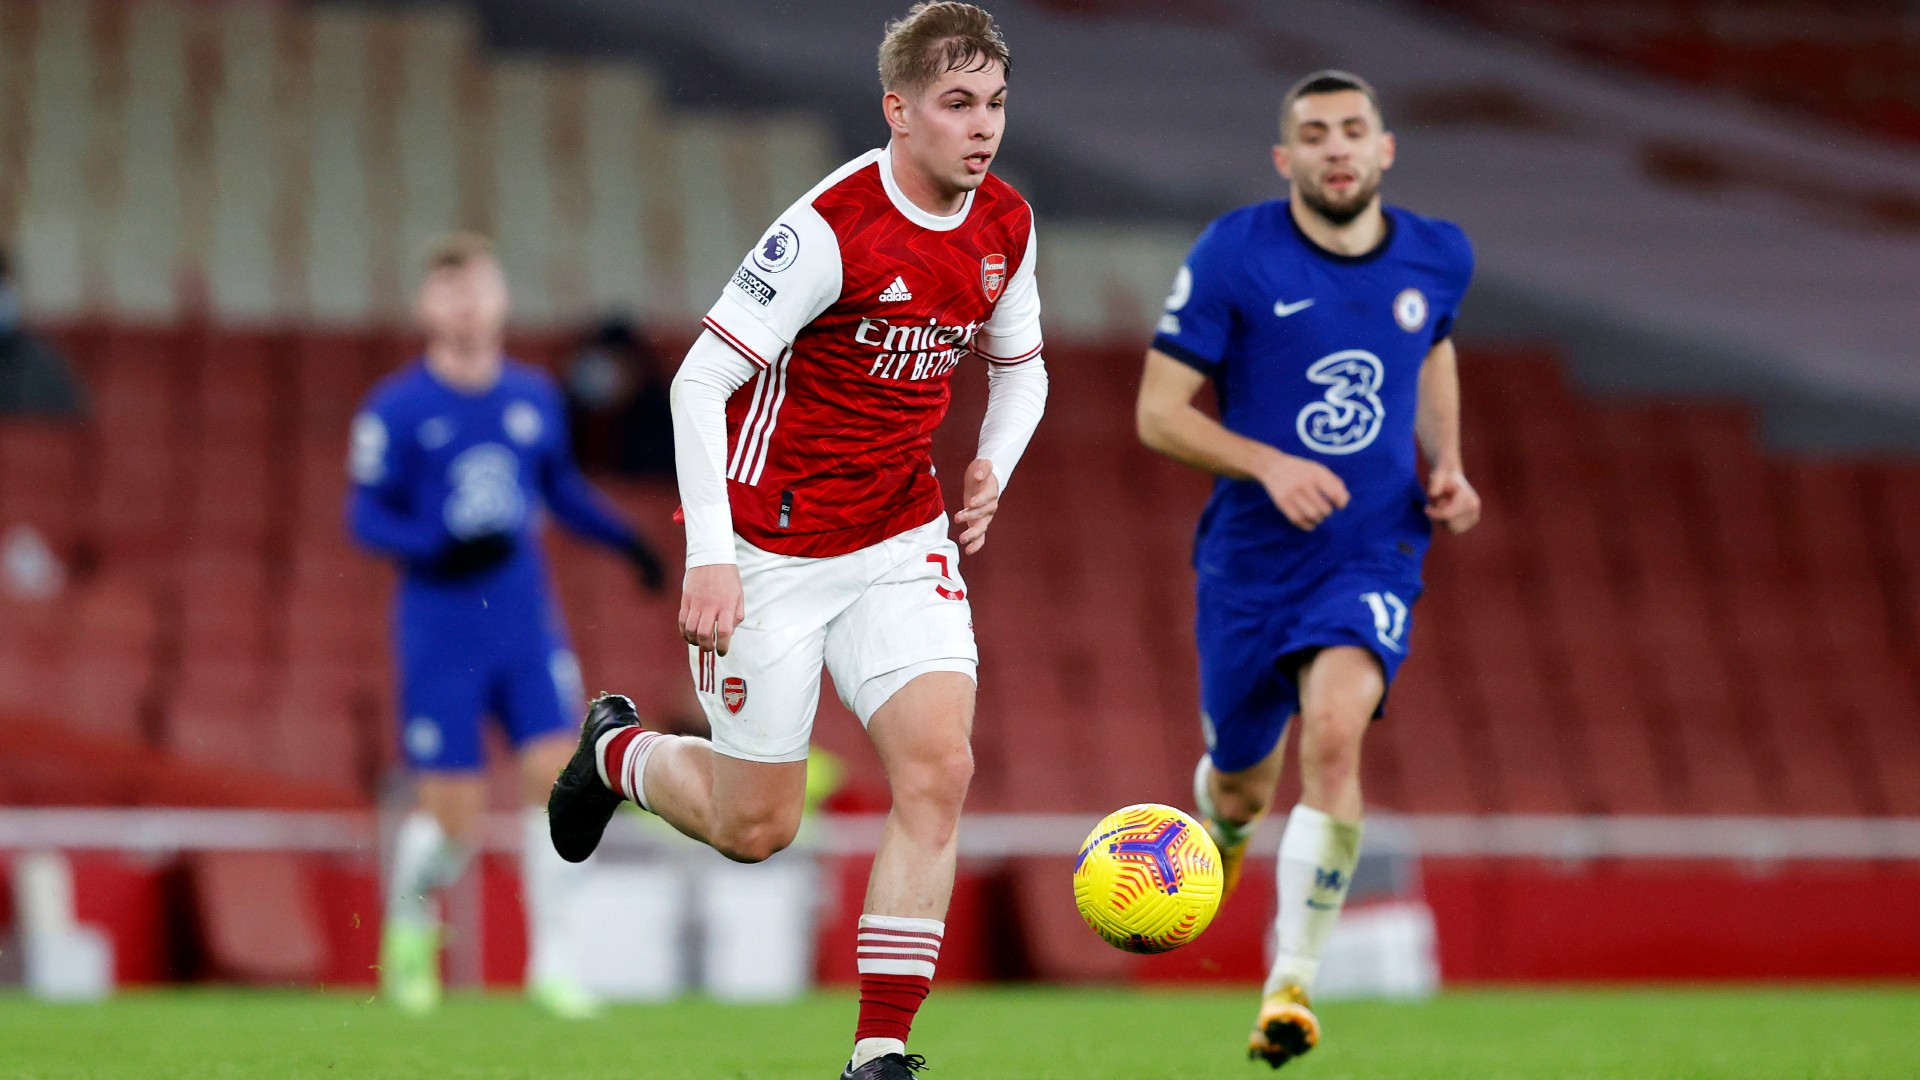 Smith Rowe can match Foden and Sancho, says Arteta